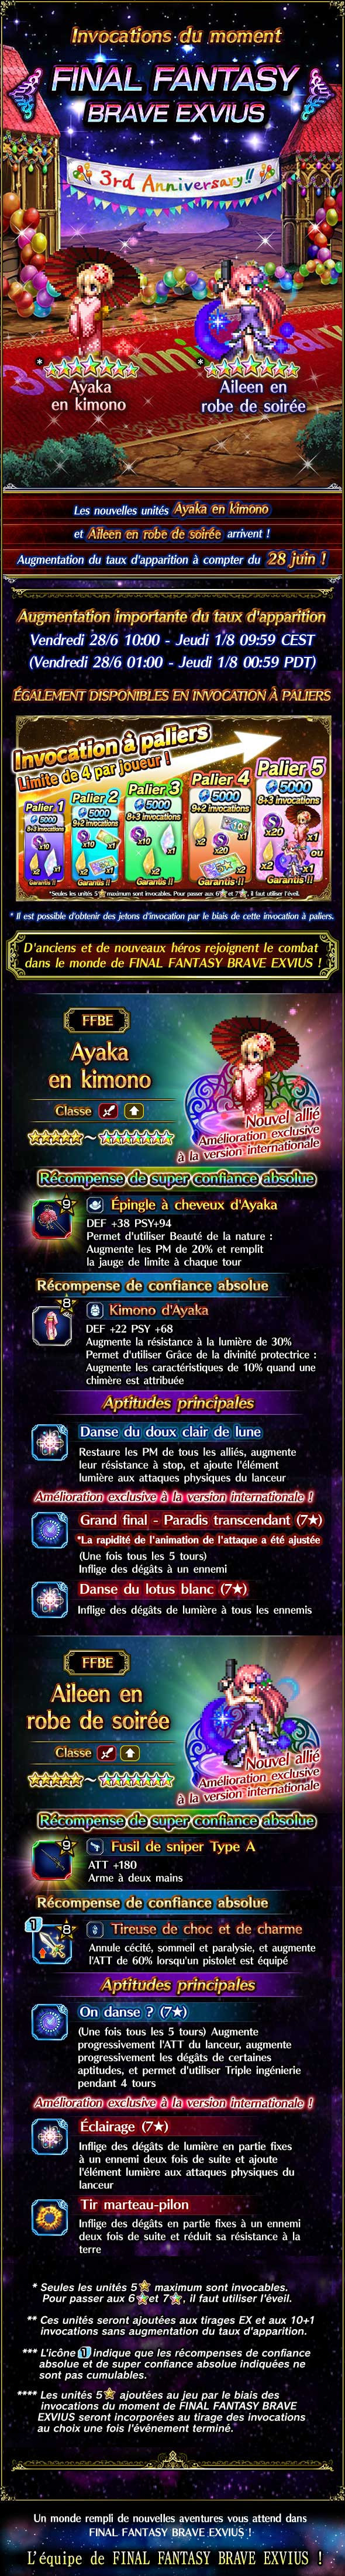 Invocations du moment - FFBE 3e anniv (KAyaka/DAileen) - du 28/06 au 01/08/19 20190625KimonoAyakaFeaturedSummon